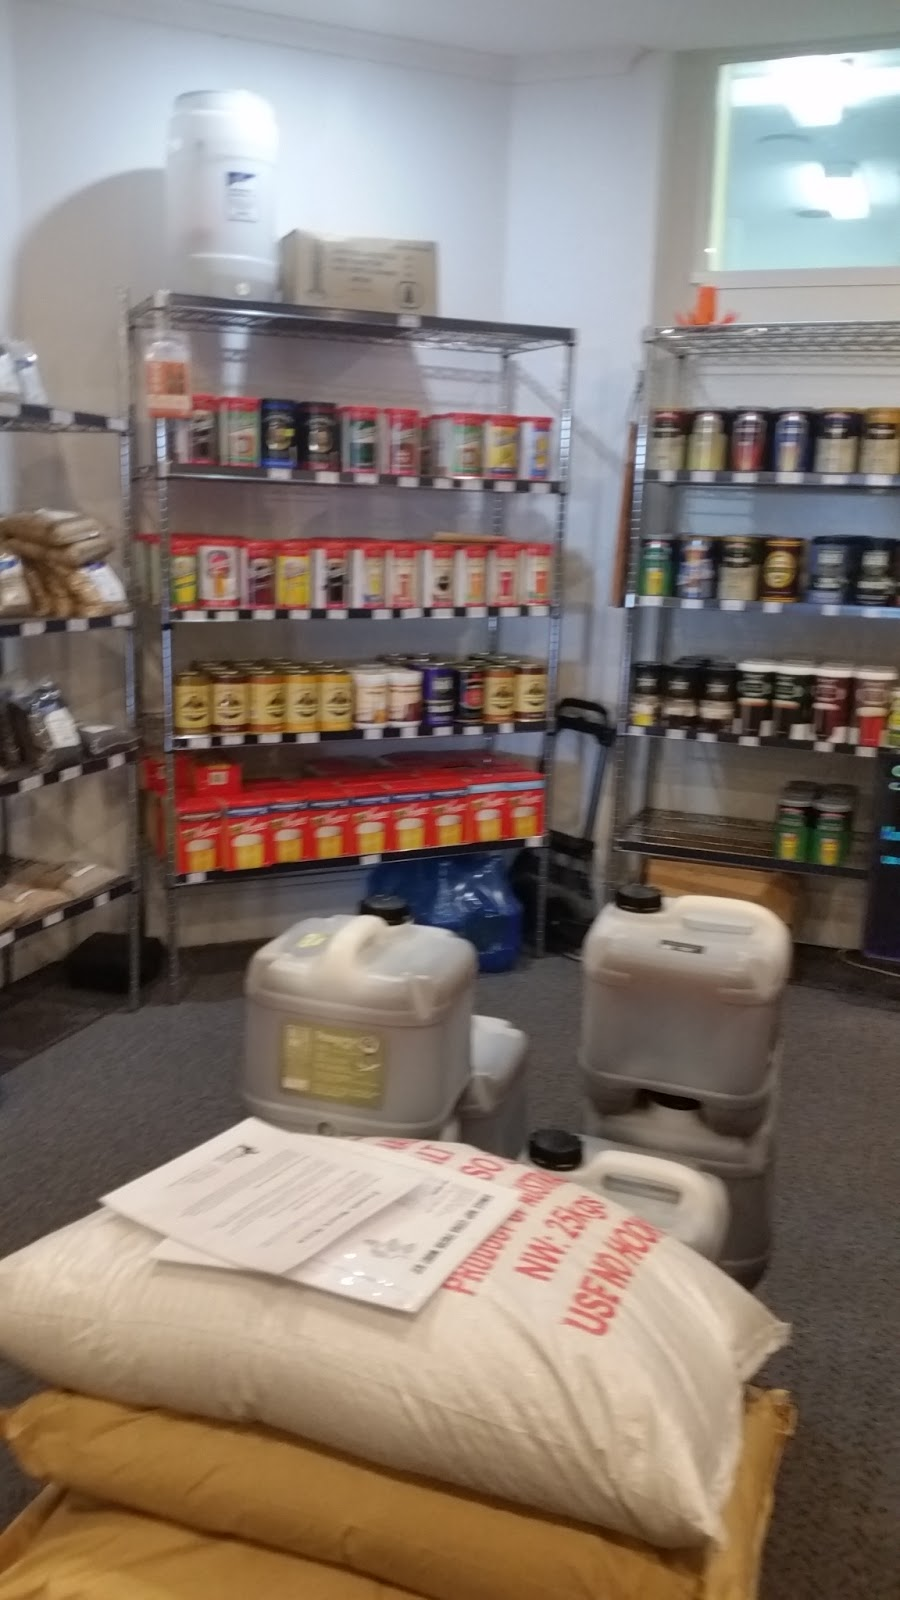 Mens Gear & Beer   clothing store   3/53 Percy St, Portland VIC 3305, Australia   0355234033 OR +61 3 5523 4033